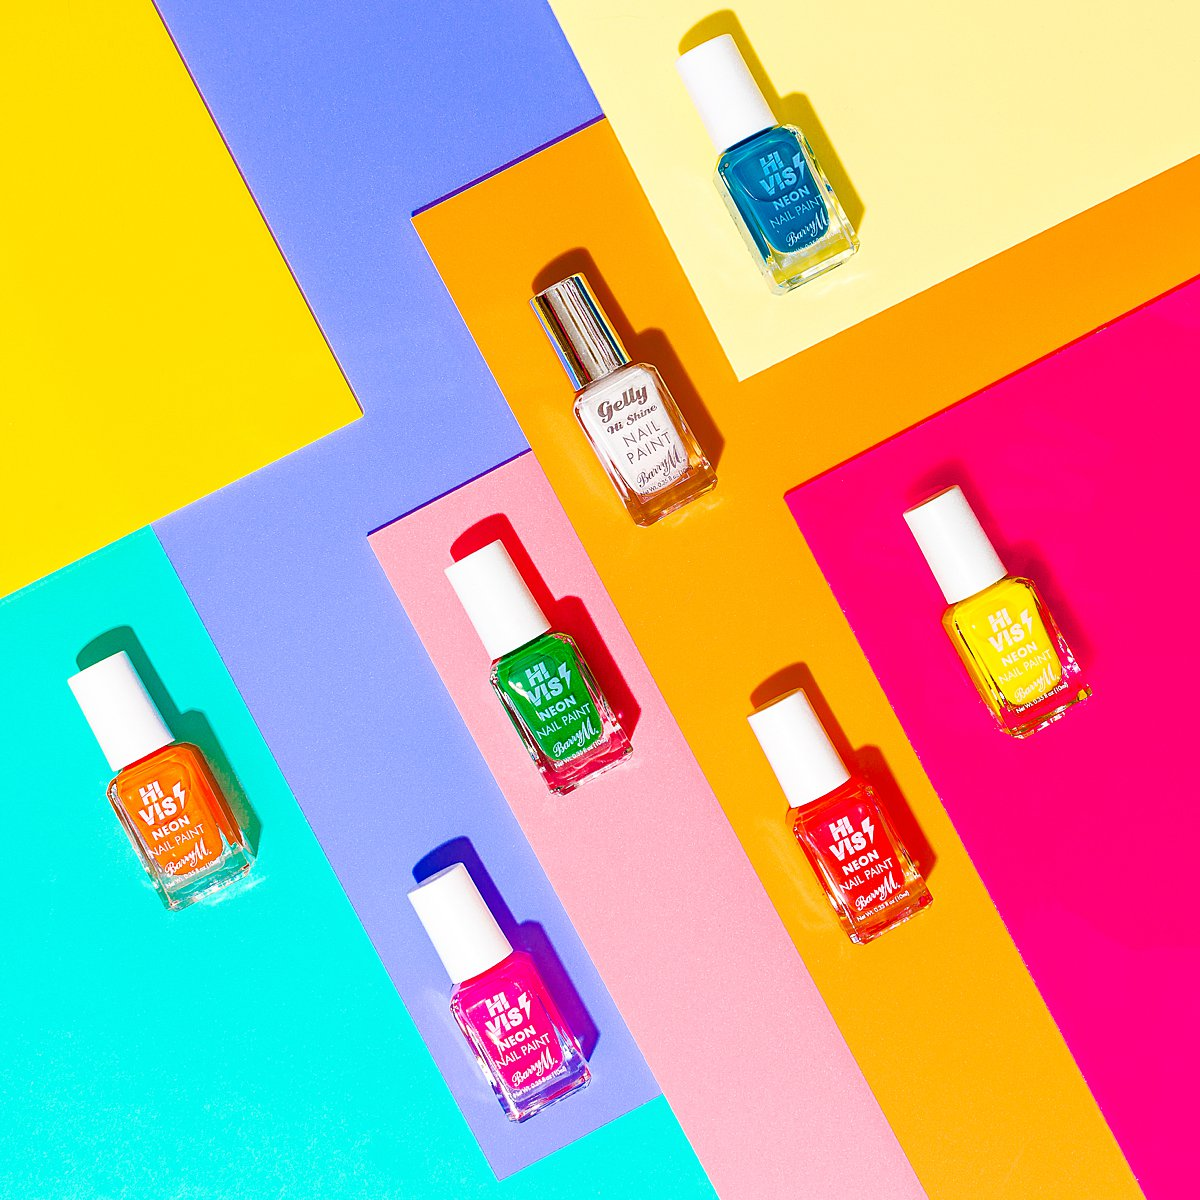 Fun colourful beauty product content creation for Barry M cosmetics. Styled makeup product stills photography by Marianne Taylor.